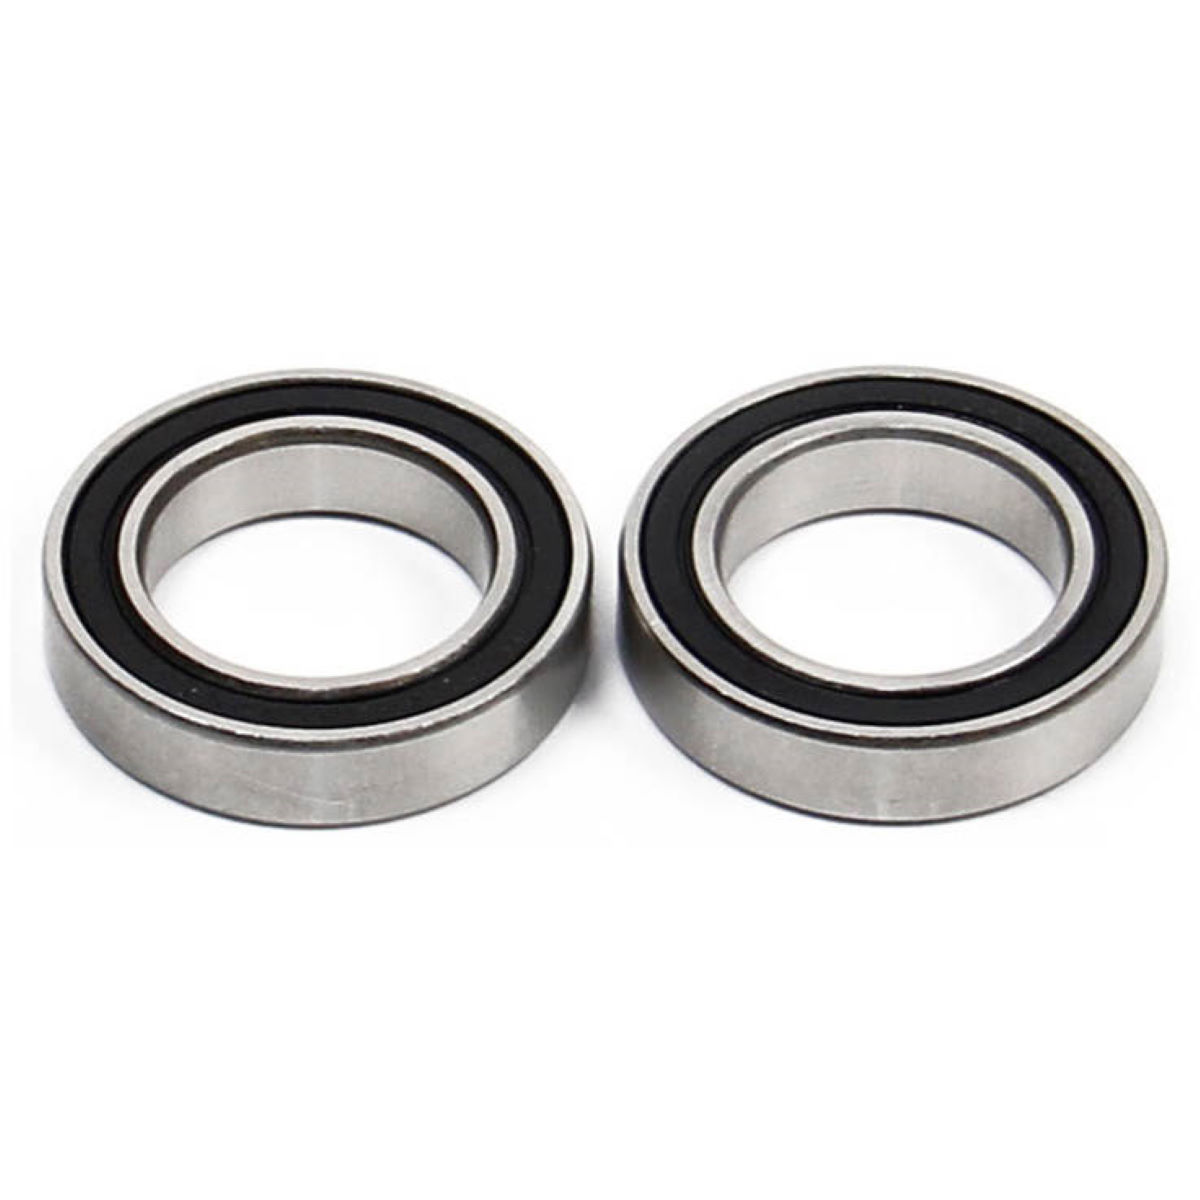 Hope Pro 2 Front Bearing Kit - One Size Neutral  Wheel Hub Spares